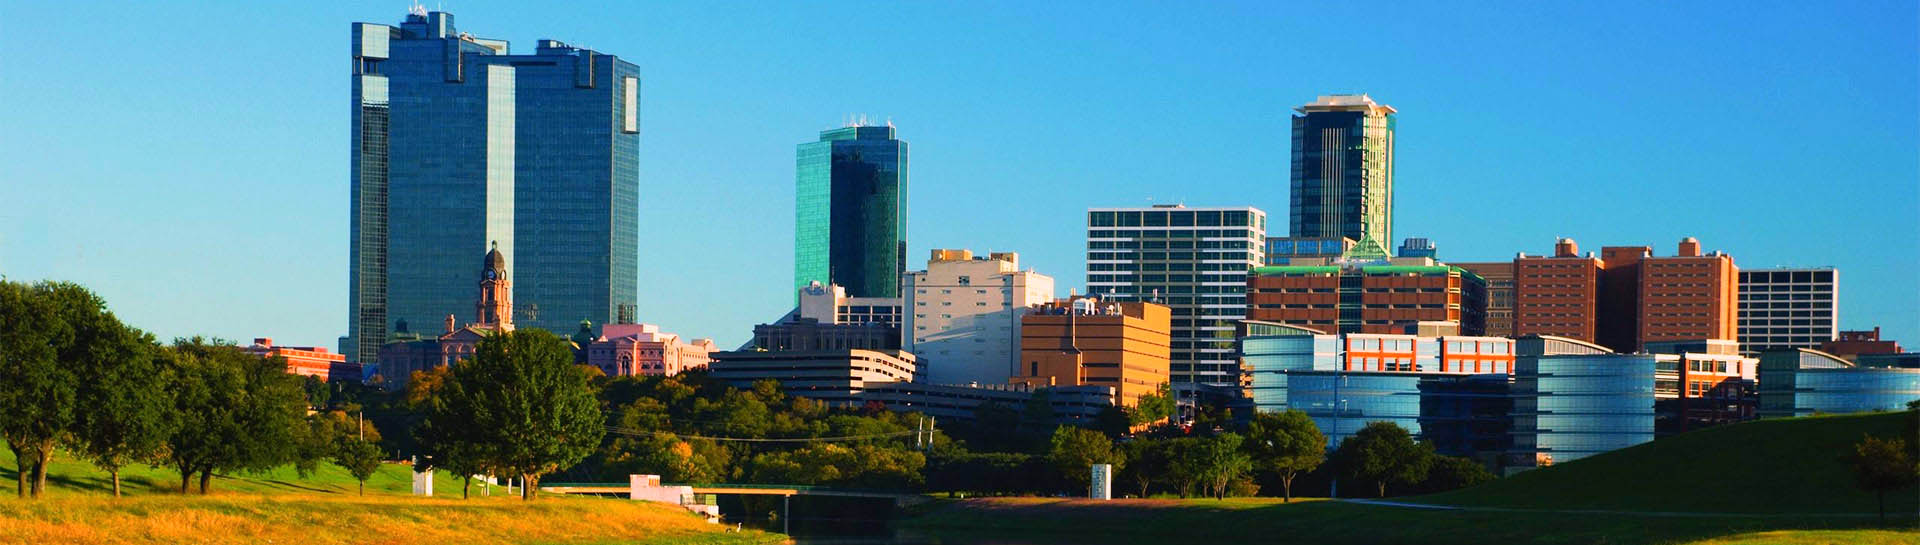 Fort Worth, TX skyline panoramic